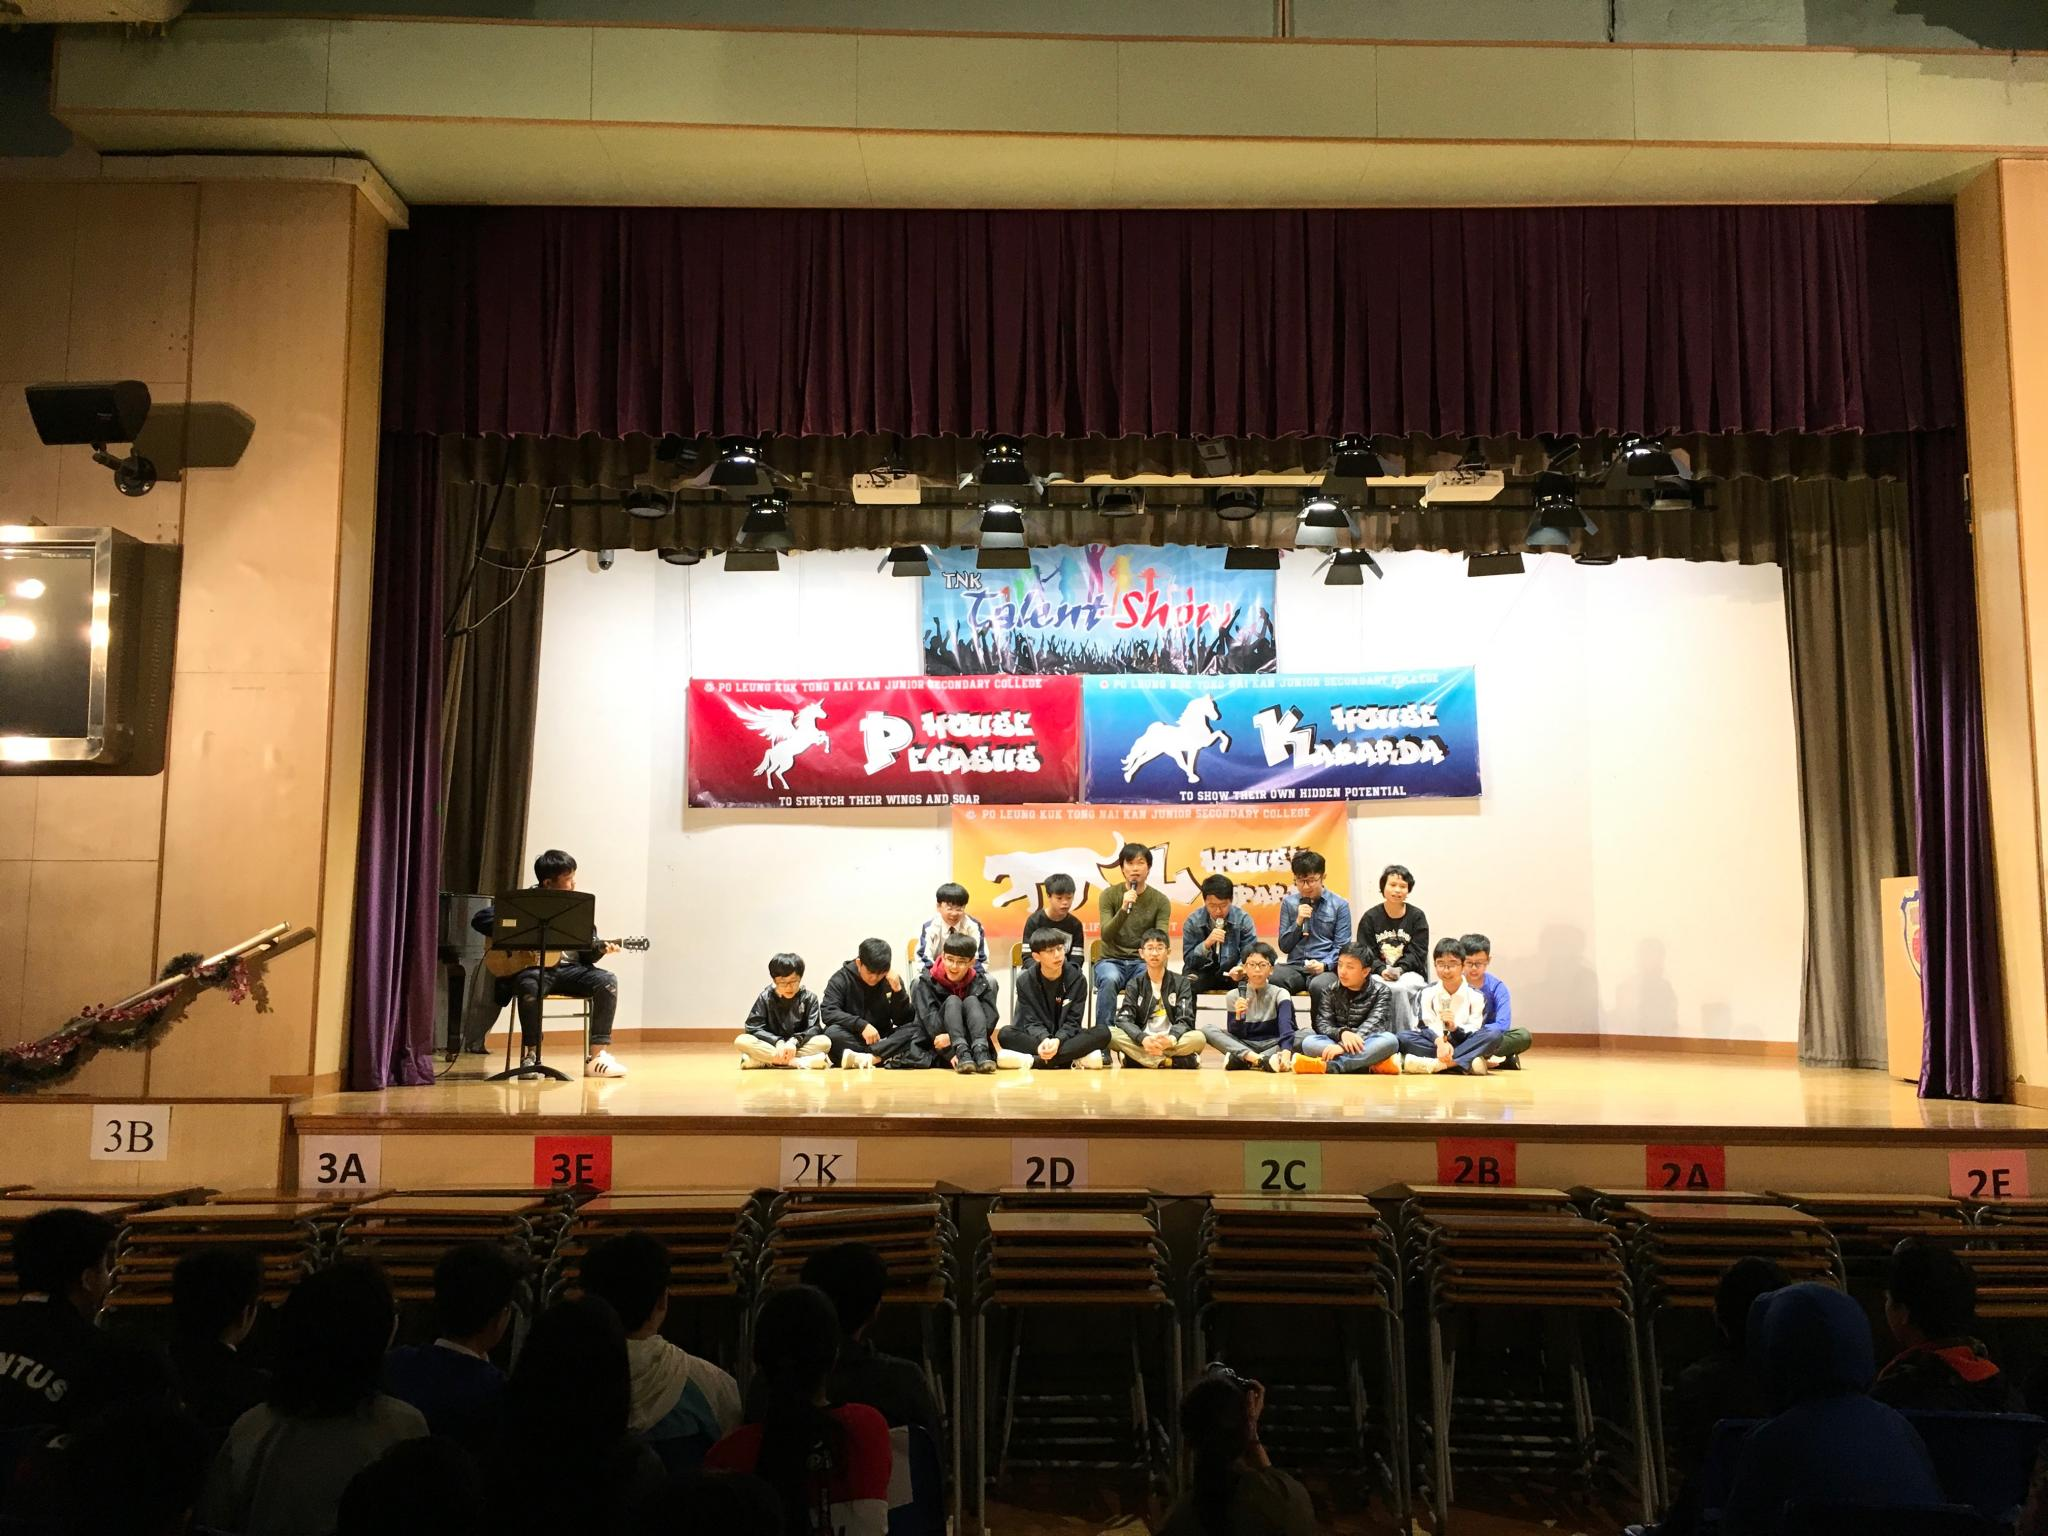 Class 2K was performing a song and one of them was playing the guitar.